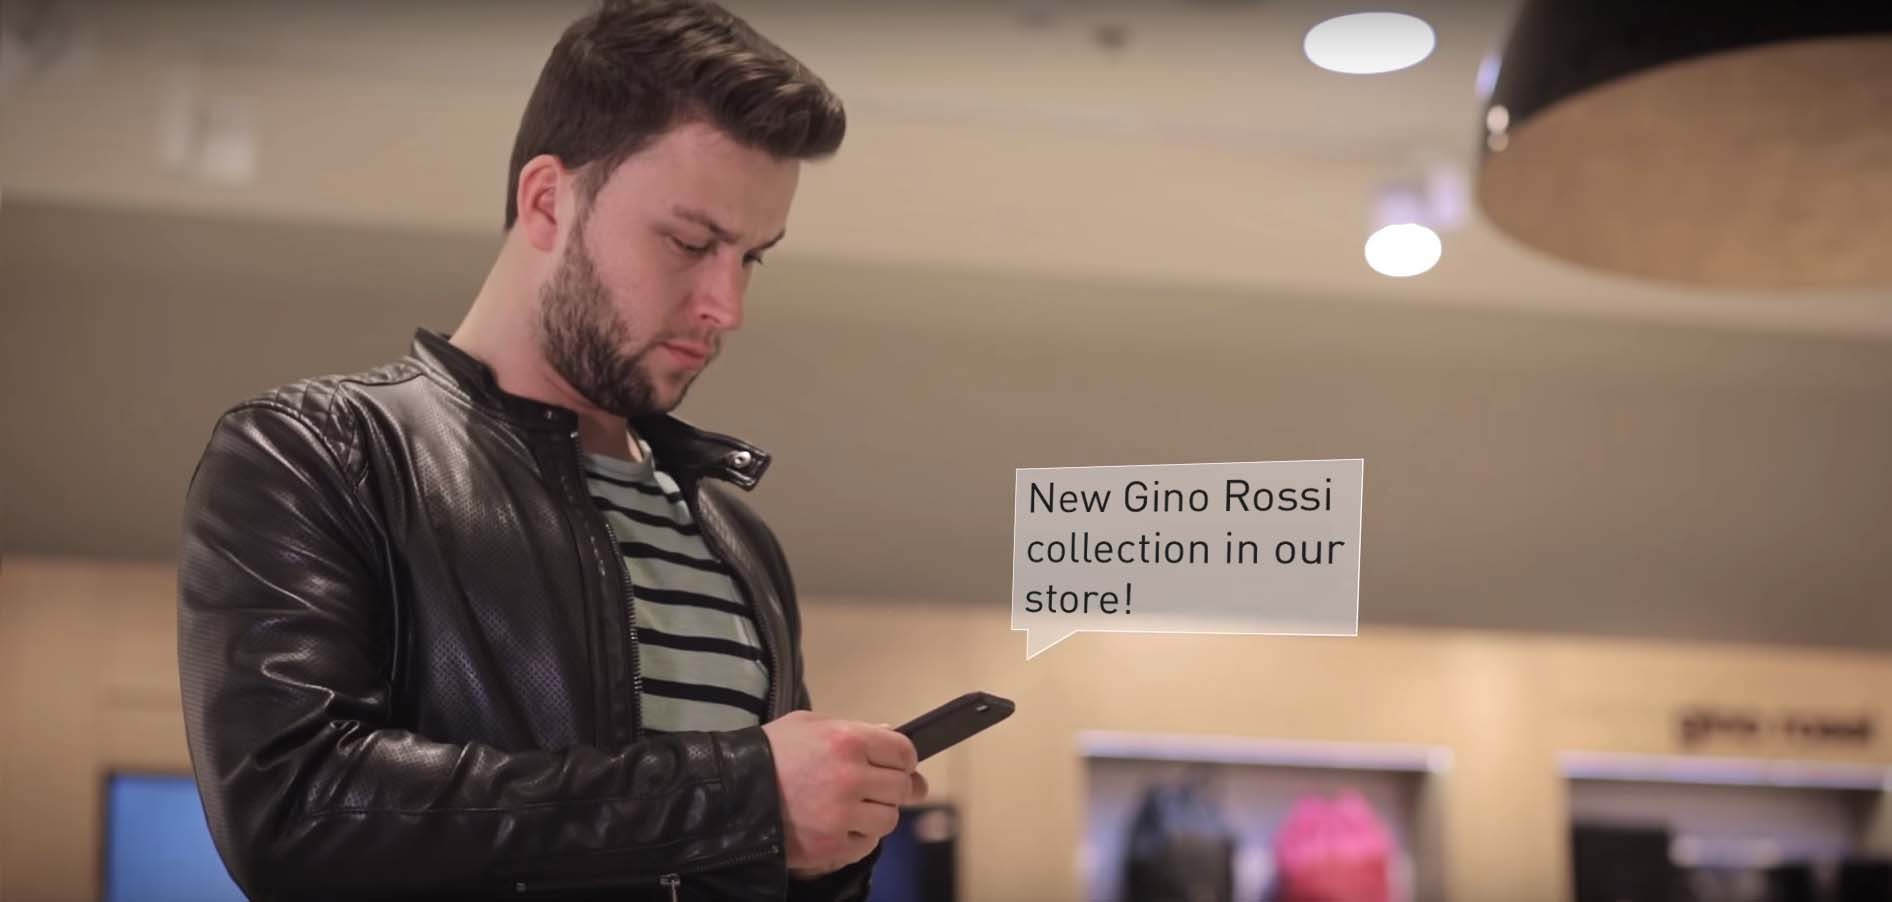 Il marketing SMS di Gino Rossi